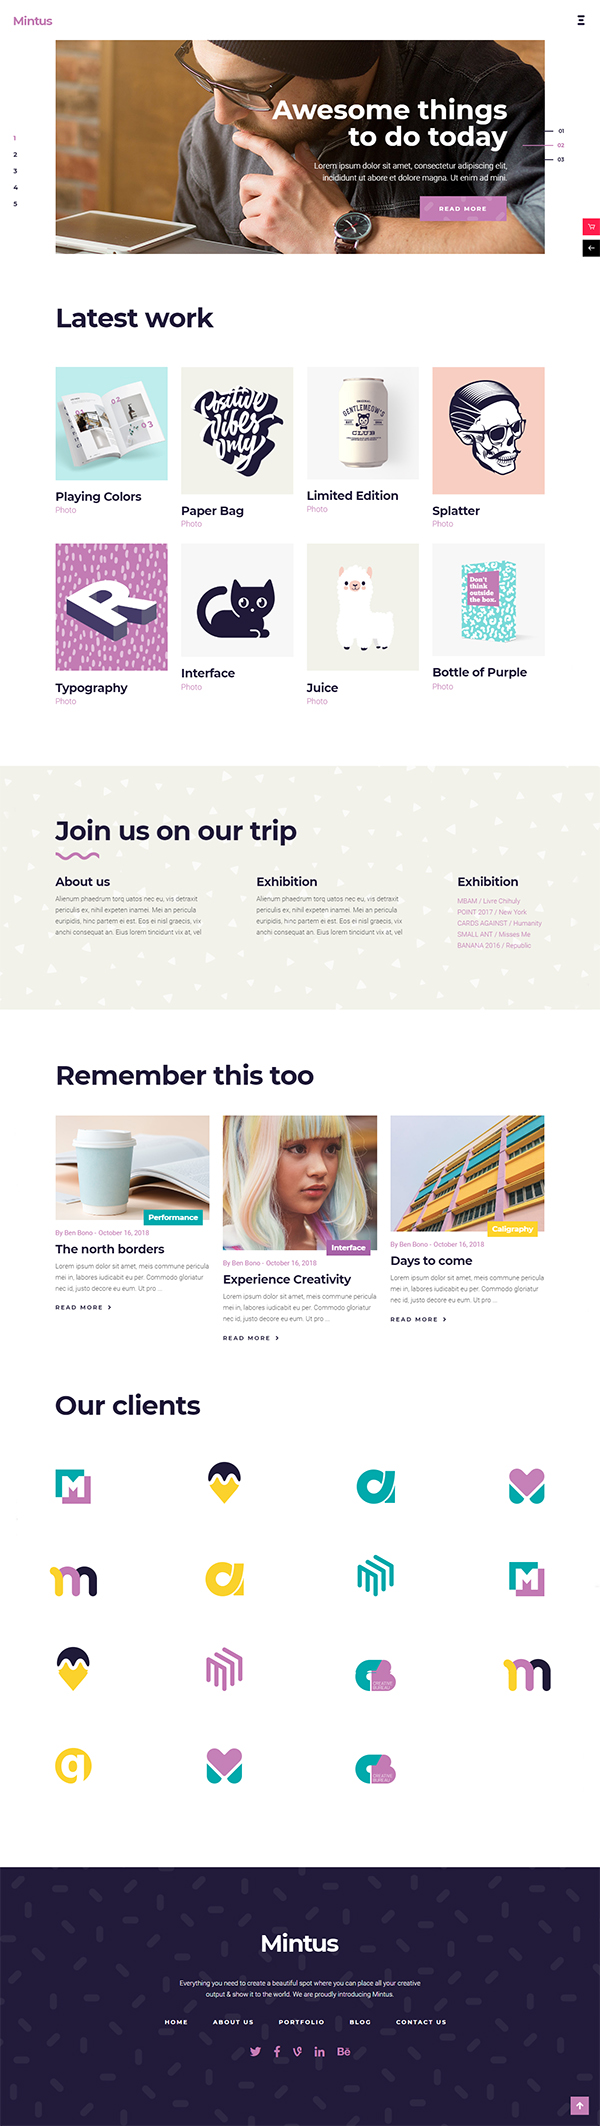 Mintus - Portfolio Theme for Illustrators and Designers